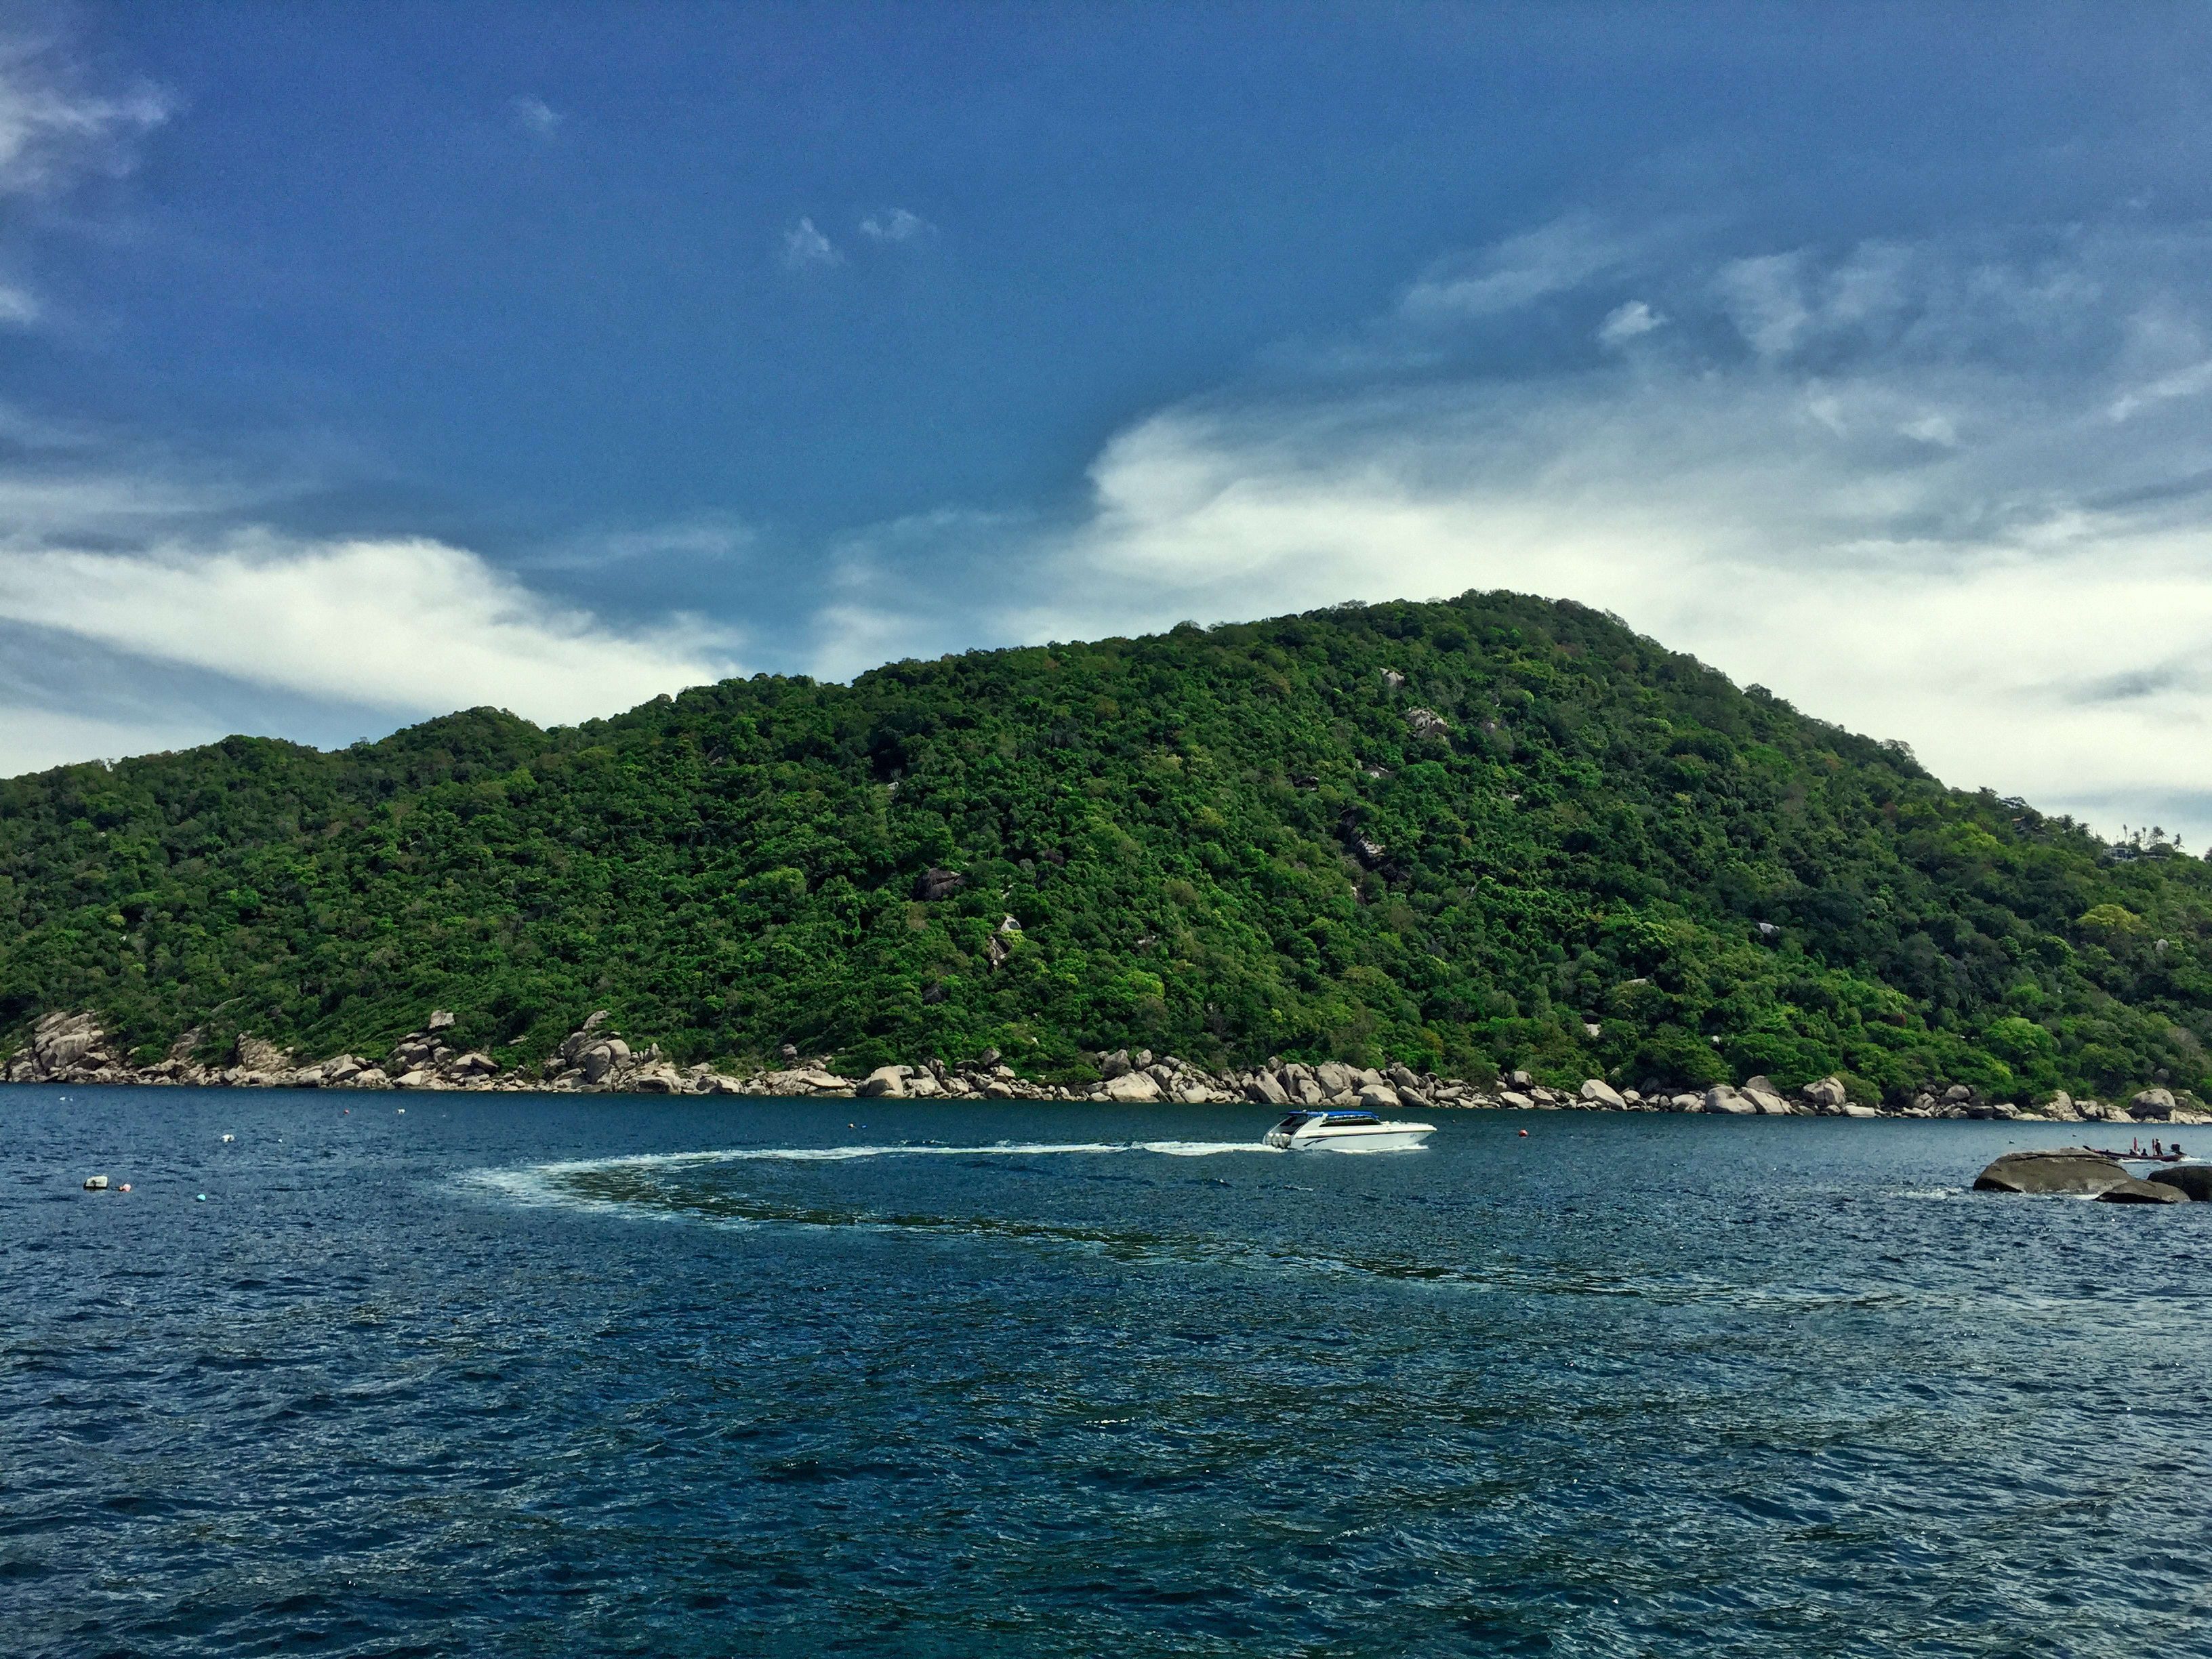 The view off the Ko Phangan coast